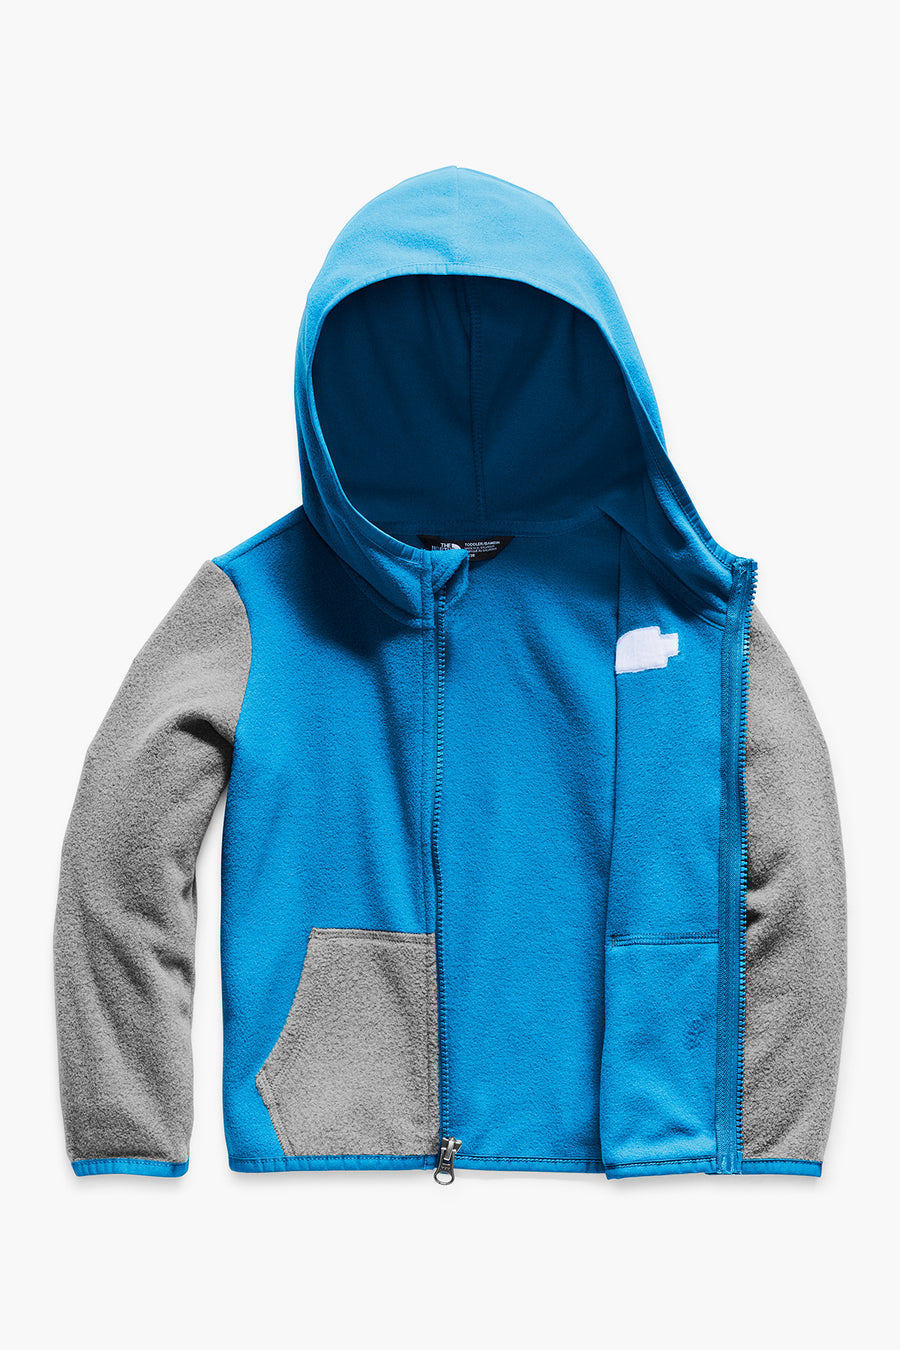 The North Face Toddler Glacier Full Zip Kids Hoodie - Clear Lake